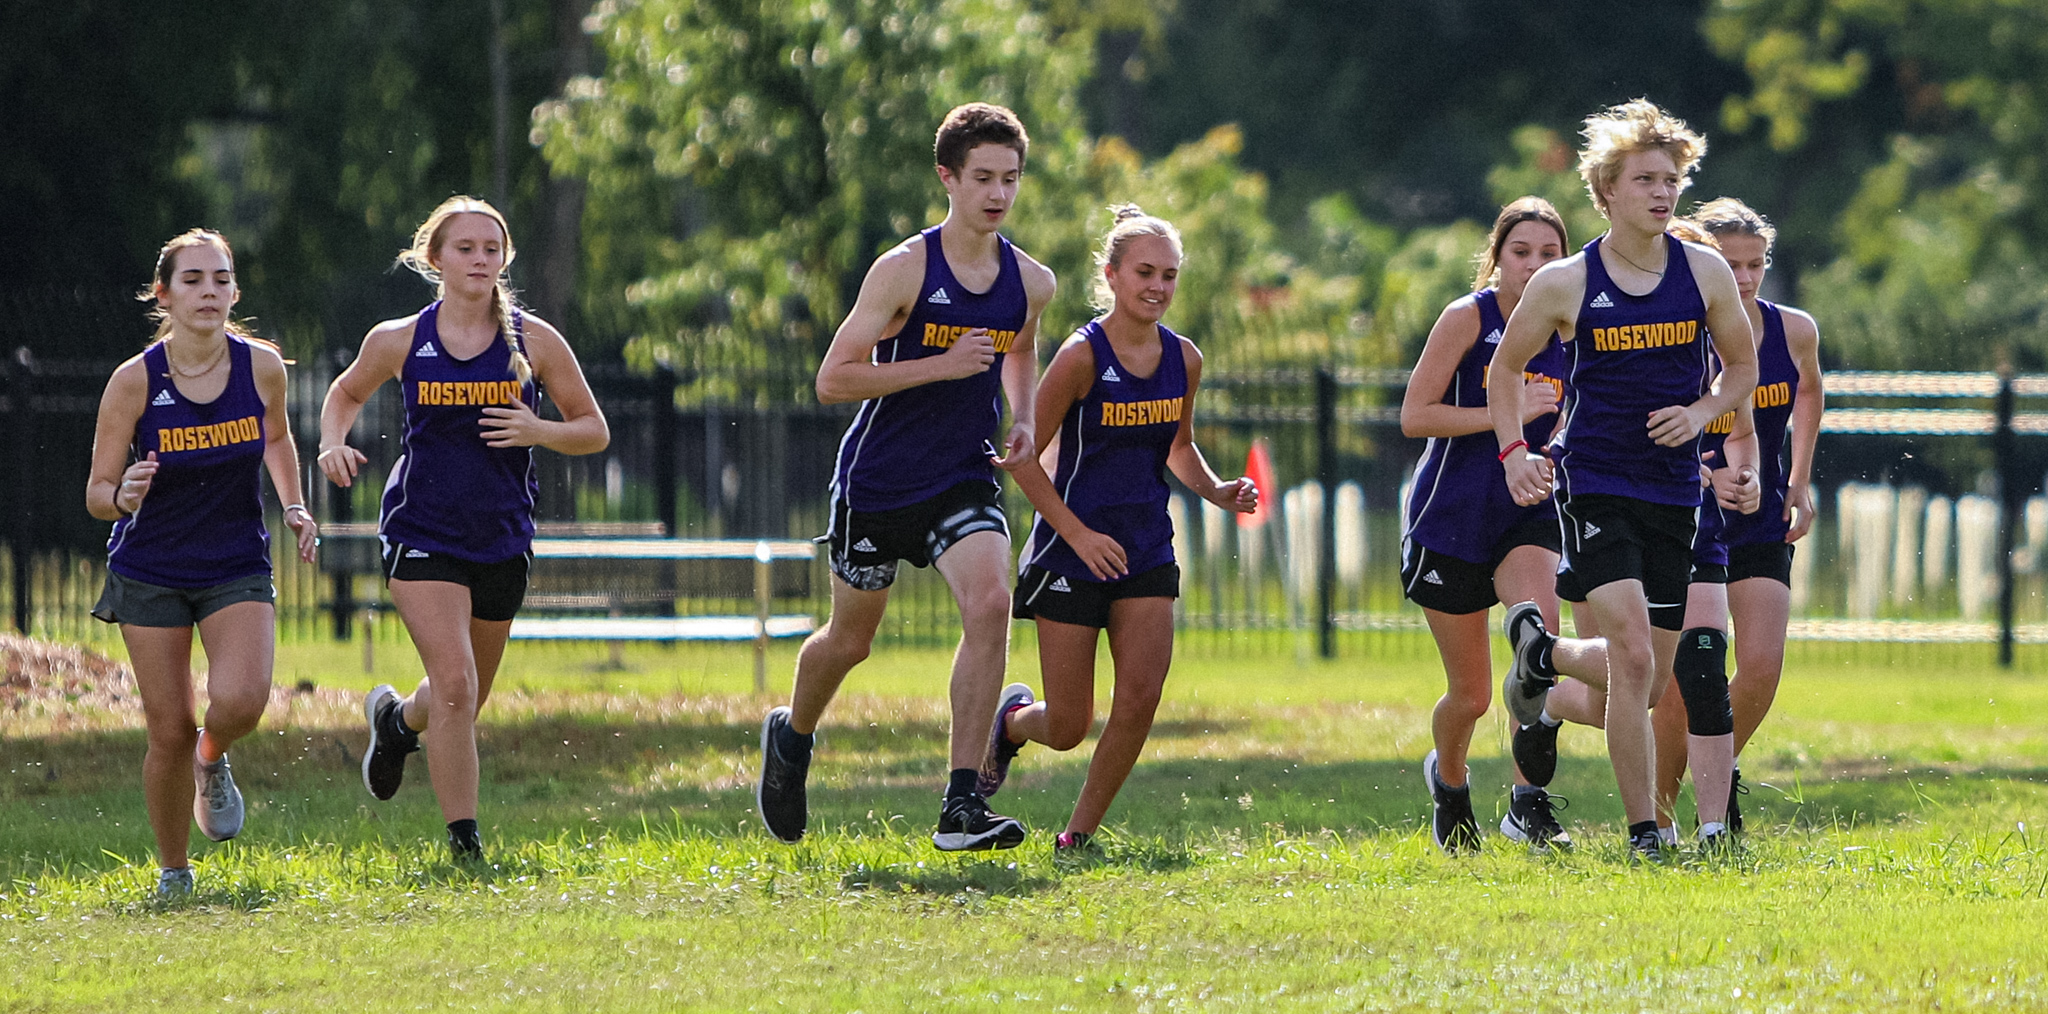 Cross Country: Rosewood Claims Girls' Portion Of Carolina 1A Meet (PHOTO GALLERY)